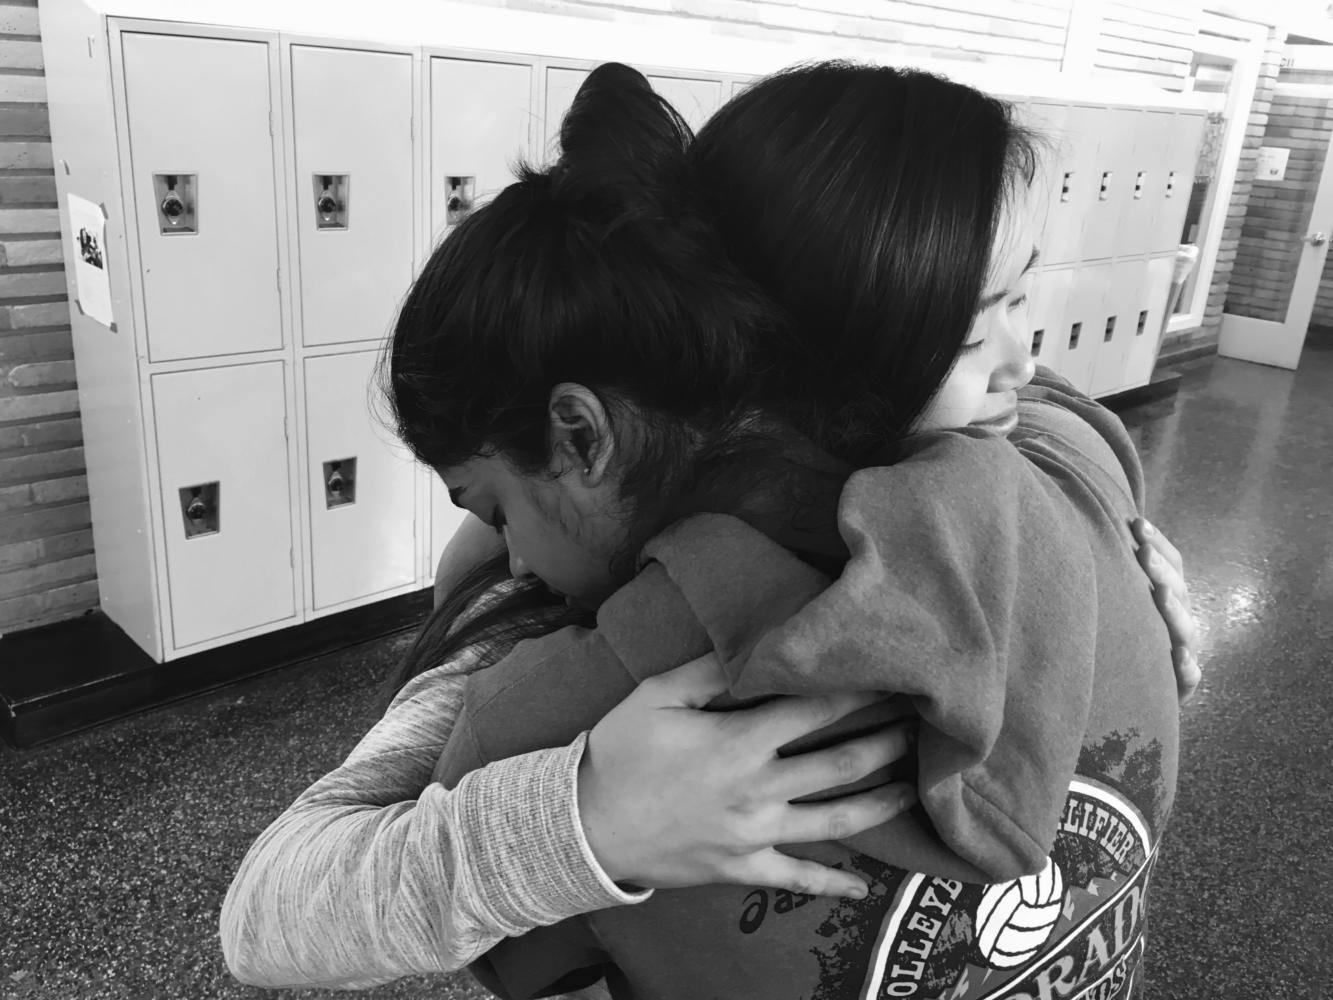 Friends share a hug in the hallway in the midst of school stress.